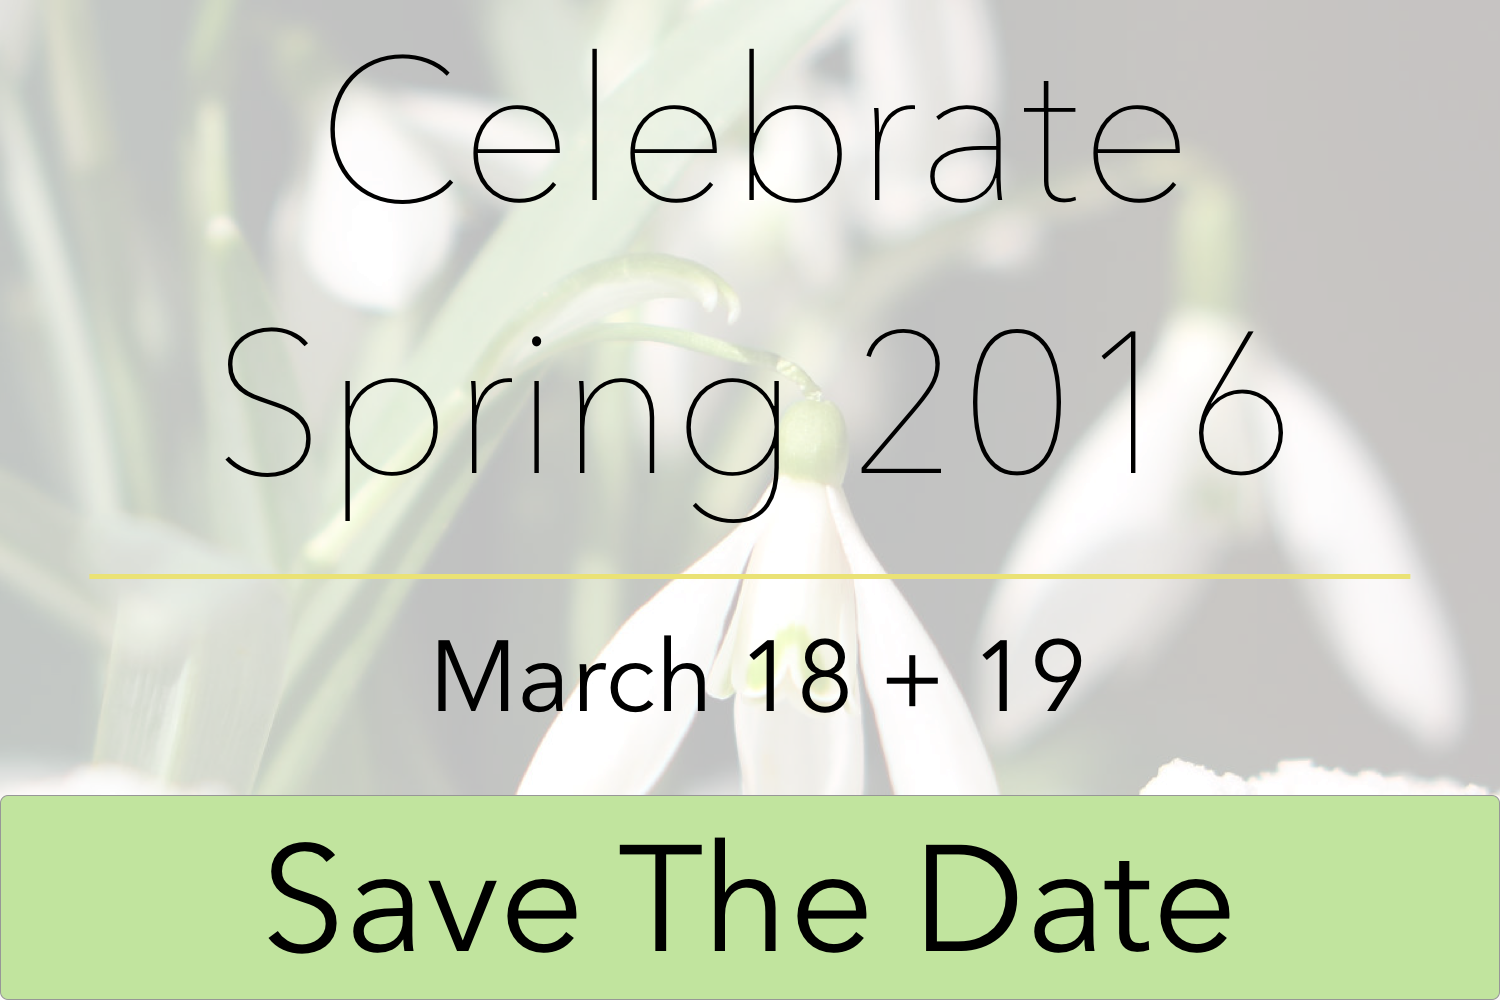 Save the Date for Celebrate Spring 2016!